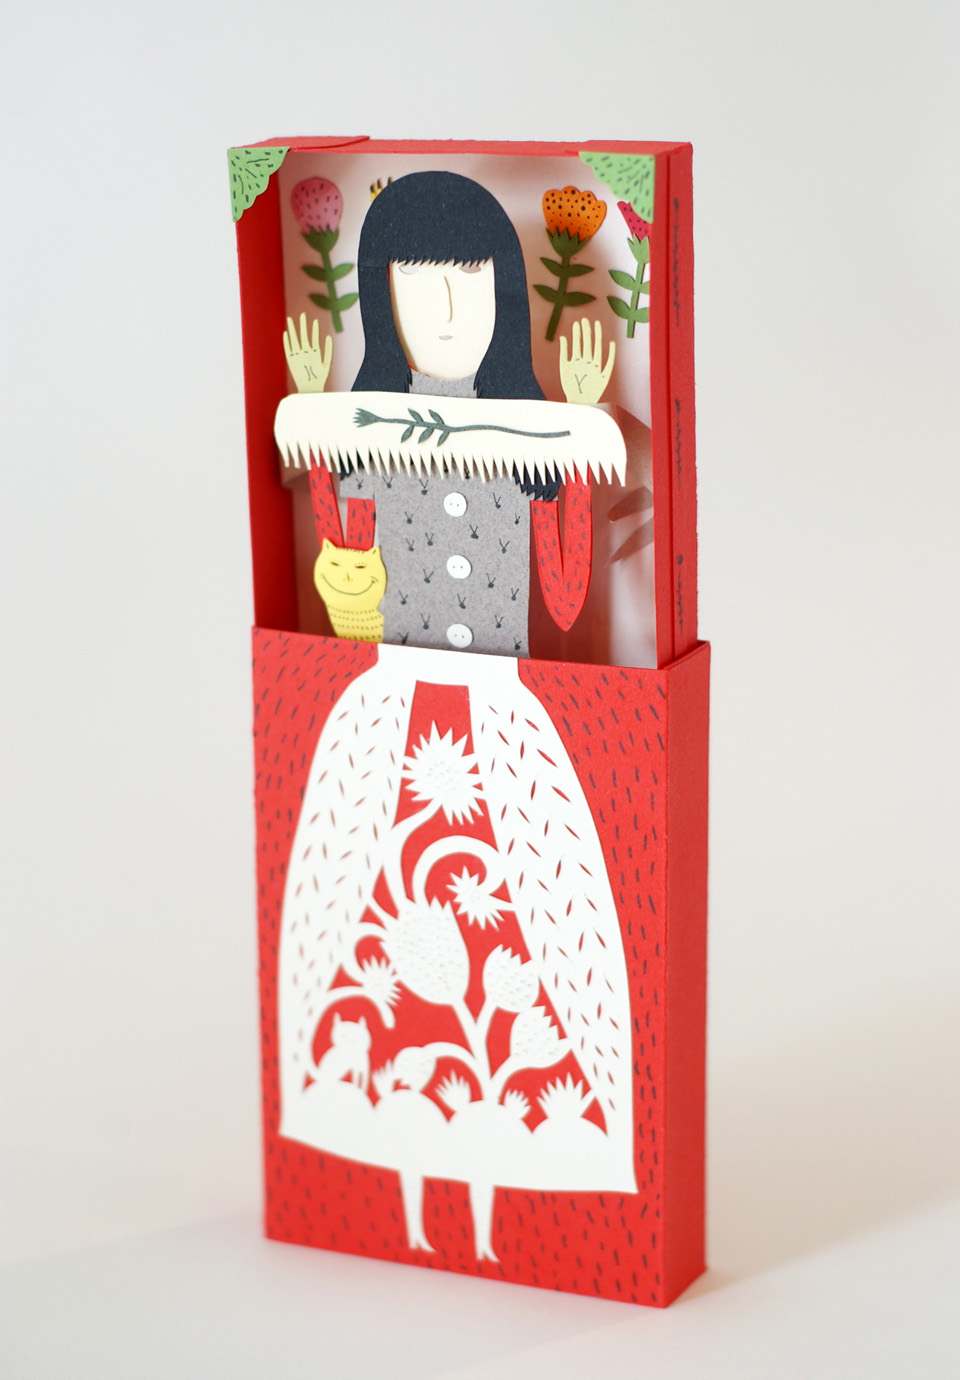 Paper art by elsa mora The Mystery Box.